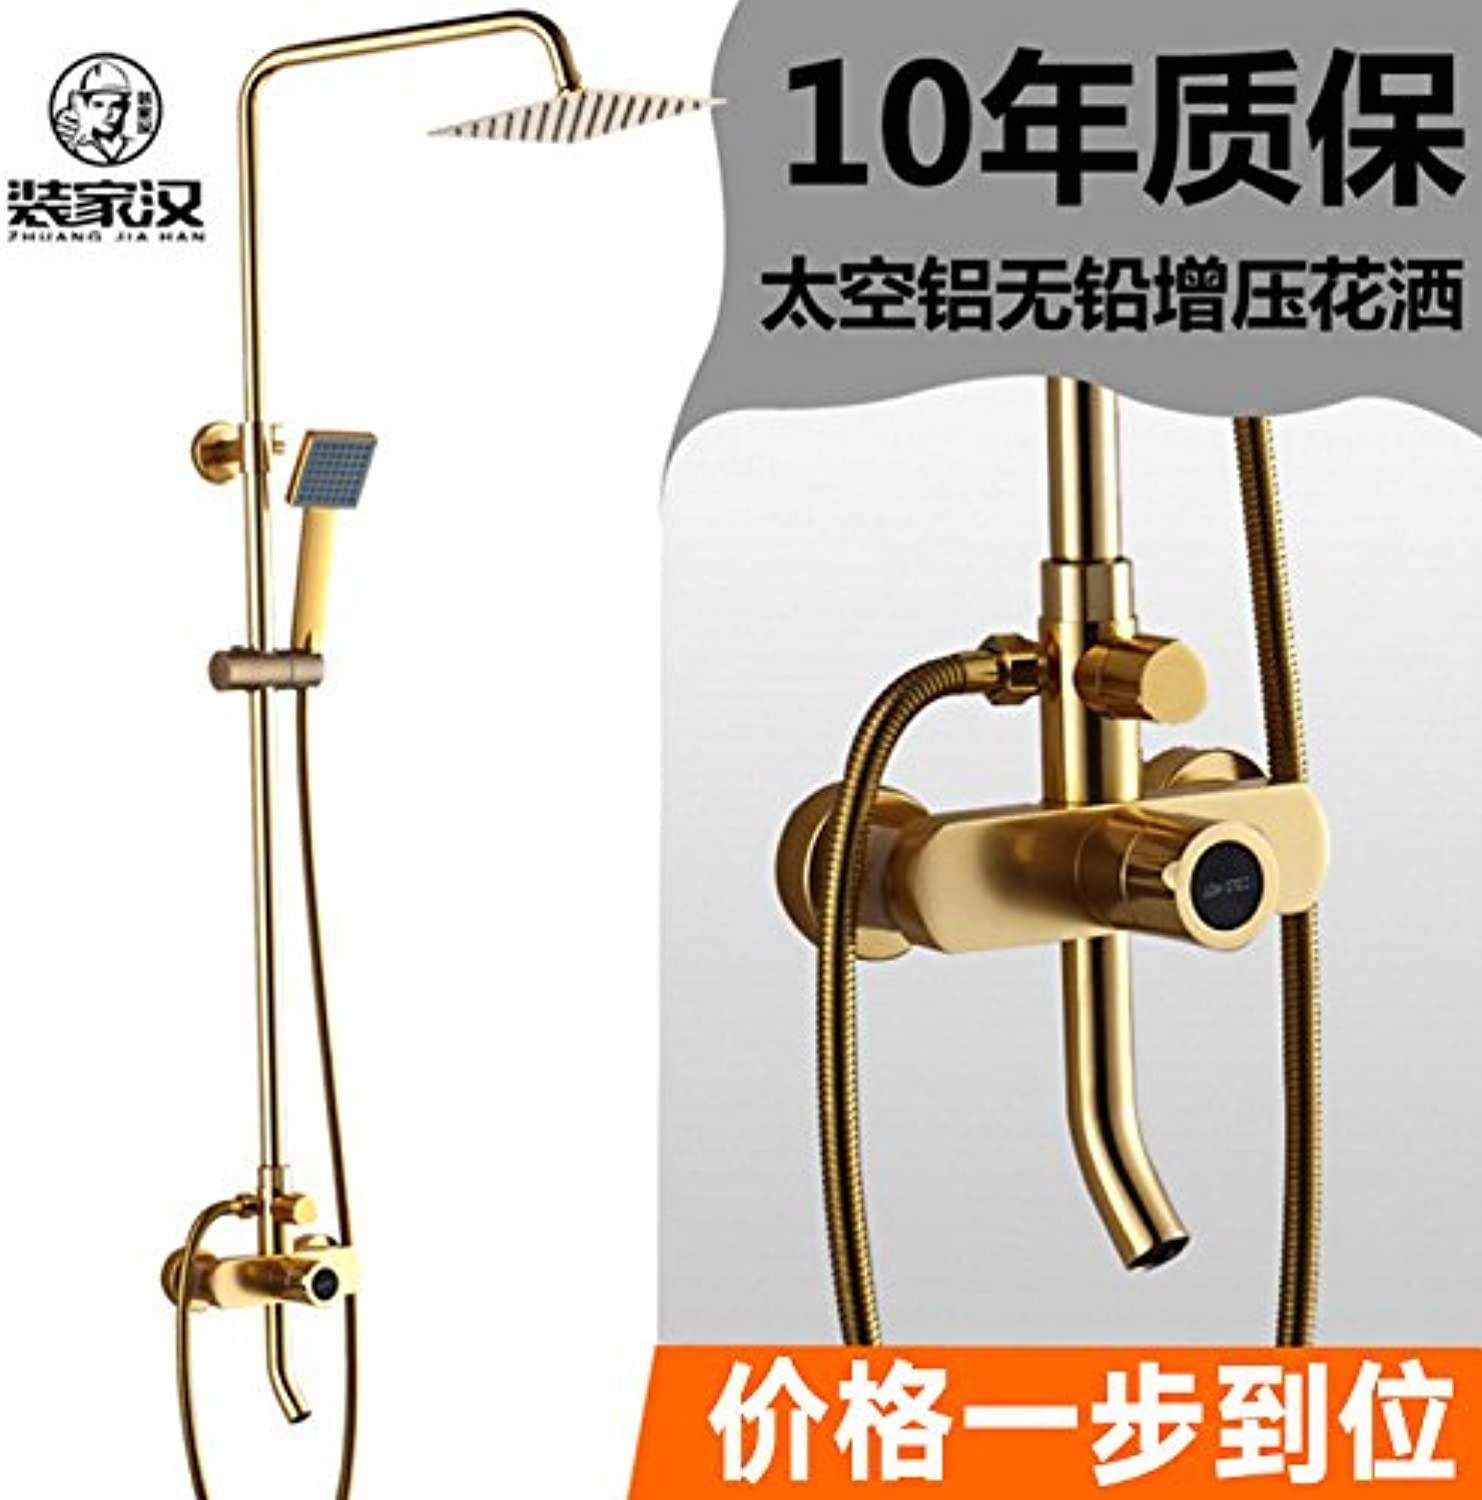 Hlluya Professional Sink Mixer Tap Kitchen Faucet The space aluminum shower space aluminum shower kit aluminum sprinkler golden dragon booster top injection, the gold booster shower